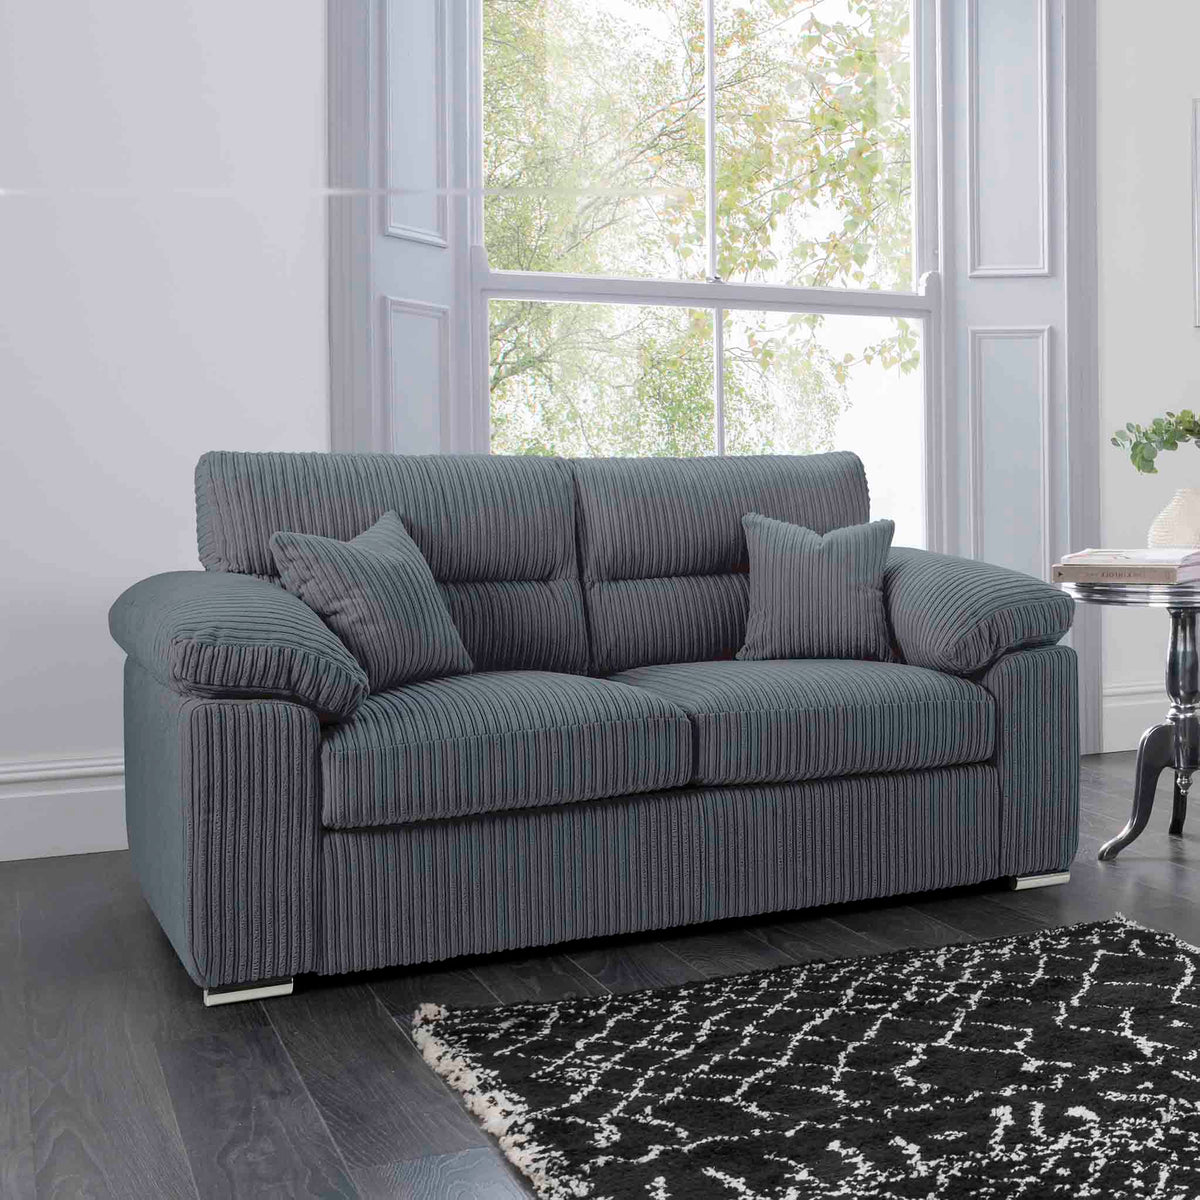 Amalfi Charcoal 2 Seater Fabric Sofa lifestyle image